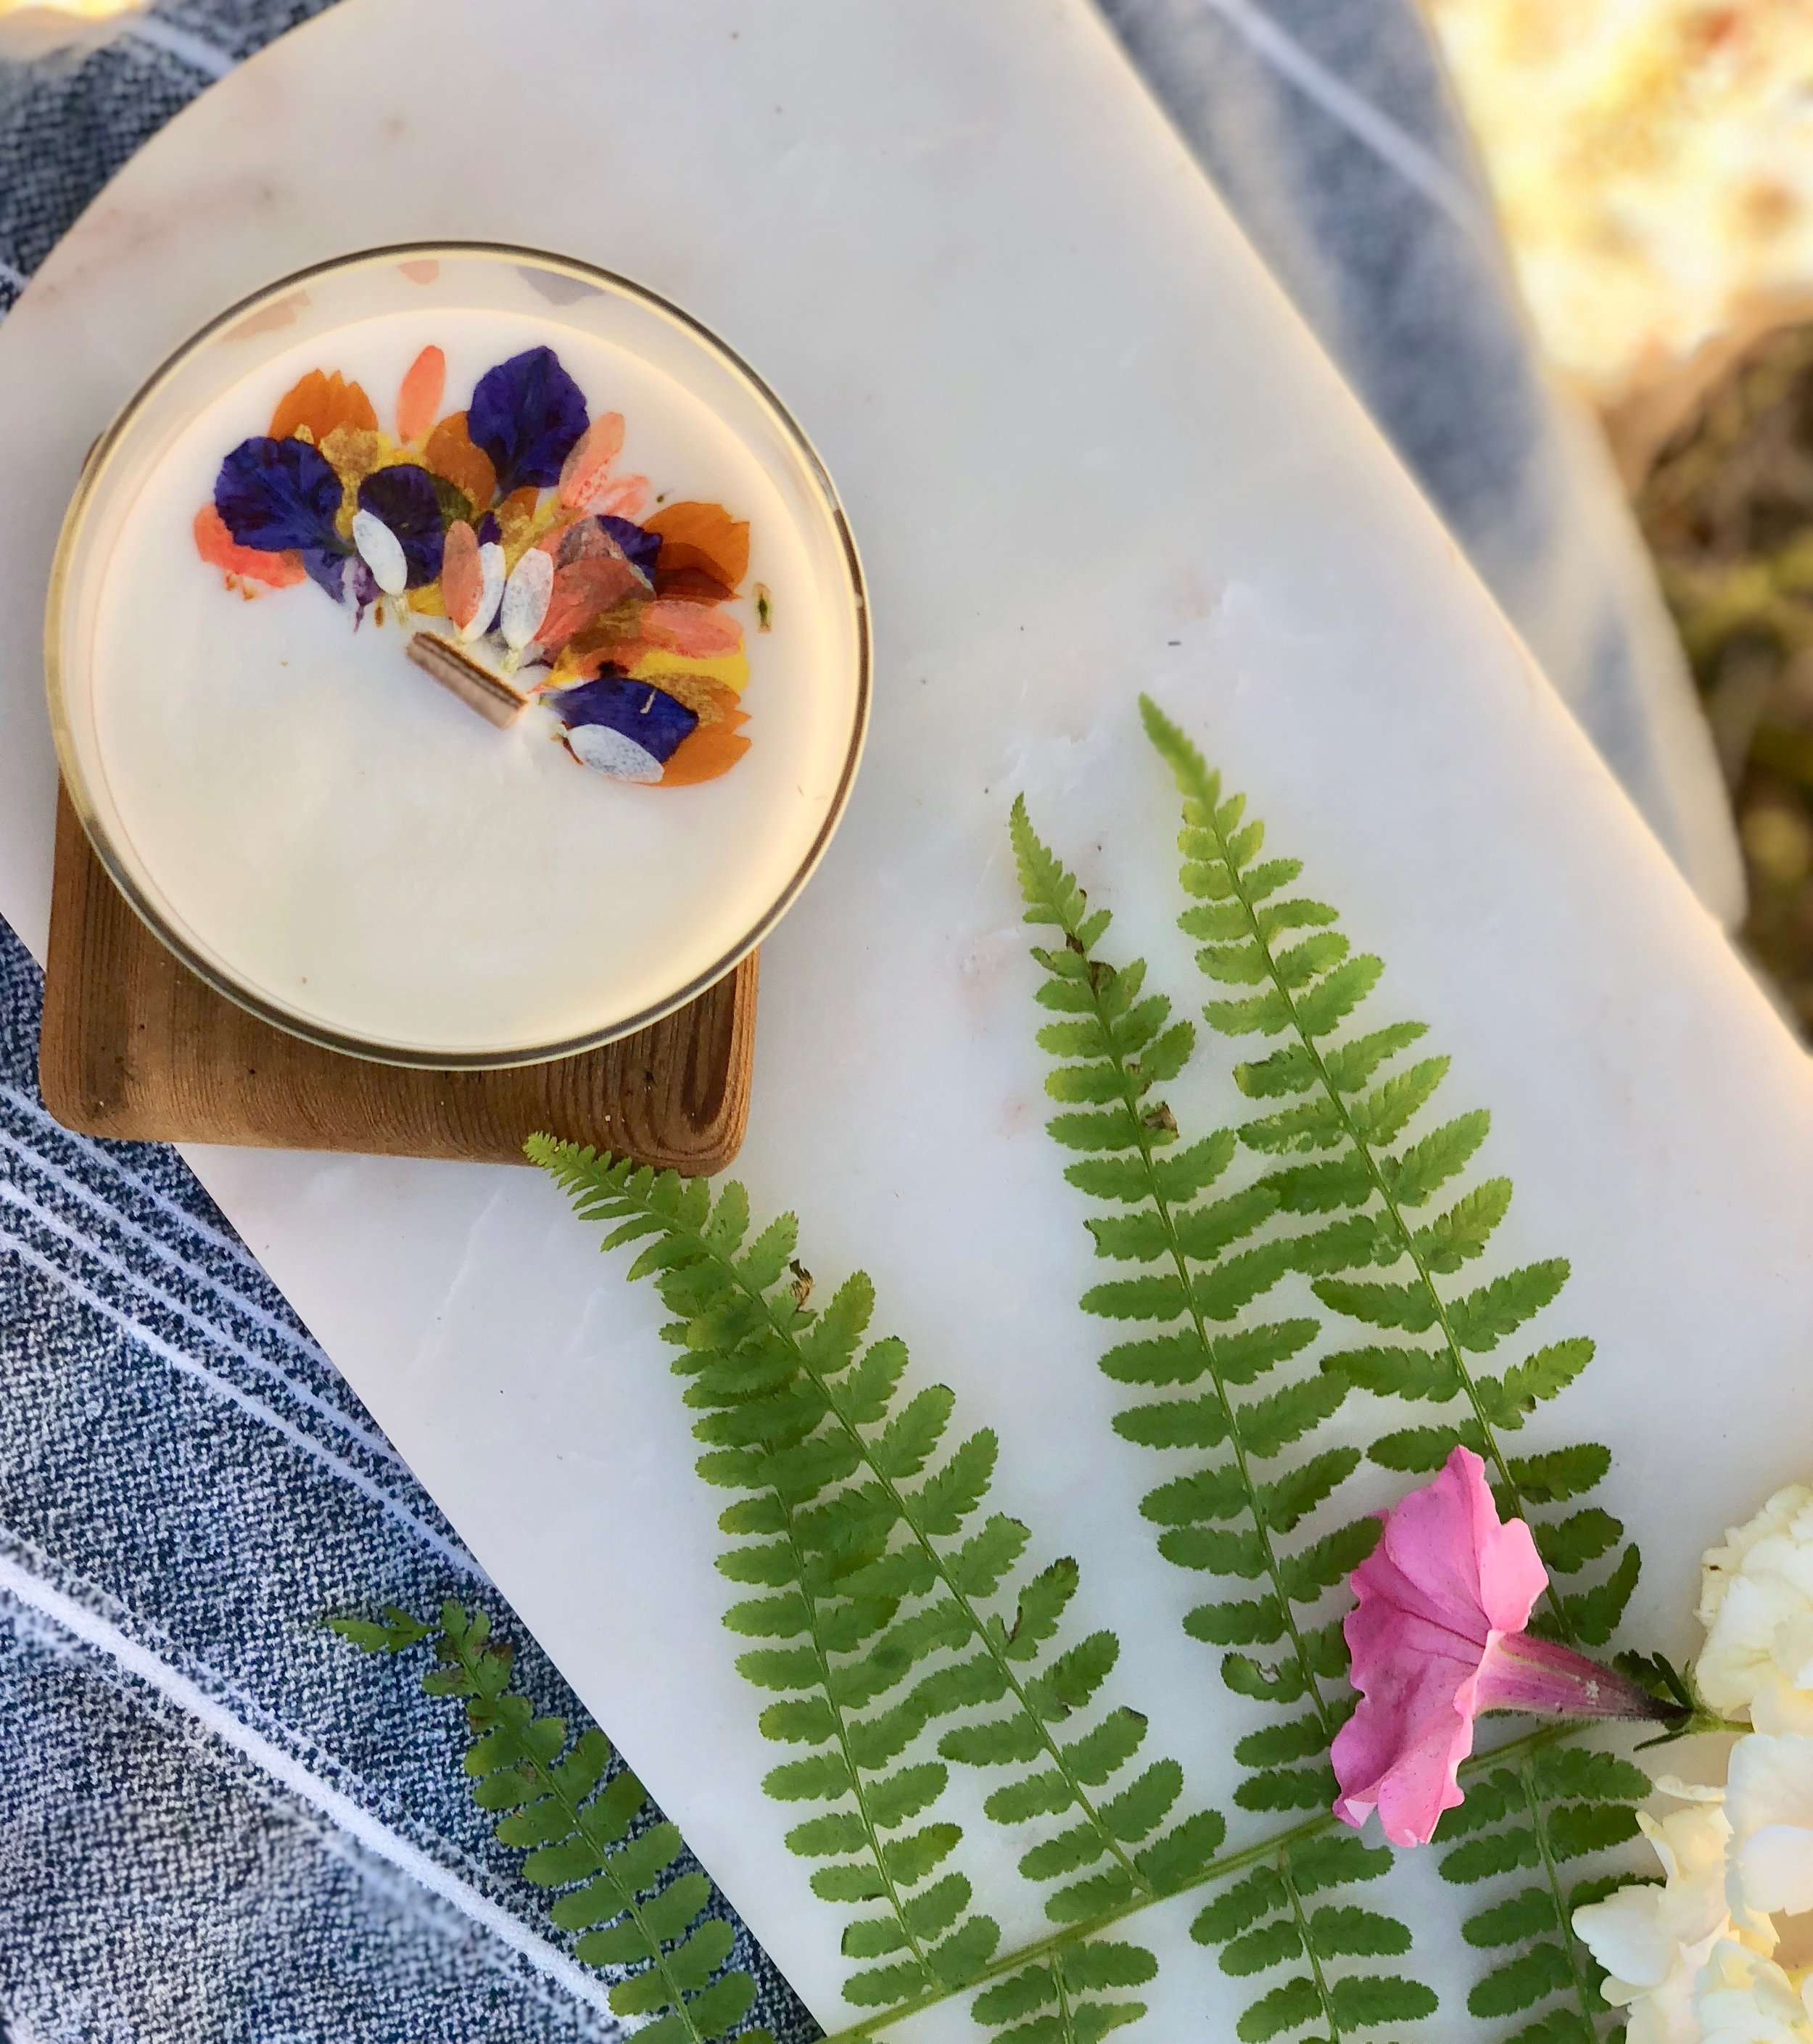 signature candles…Featuring pressed flower designs - artisan crafted with all natural ingredients including sumptuous essential oils and natural fragrance enhancers, soy wax from a renewable source, cotton and wood wicks, and recyclable containers